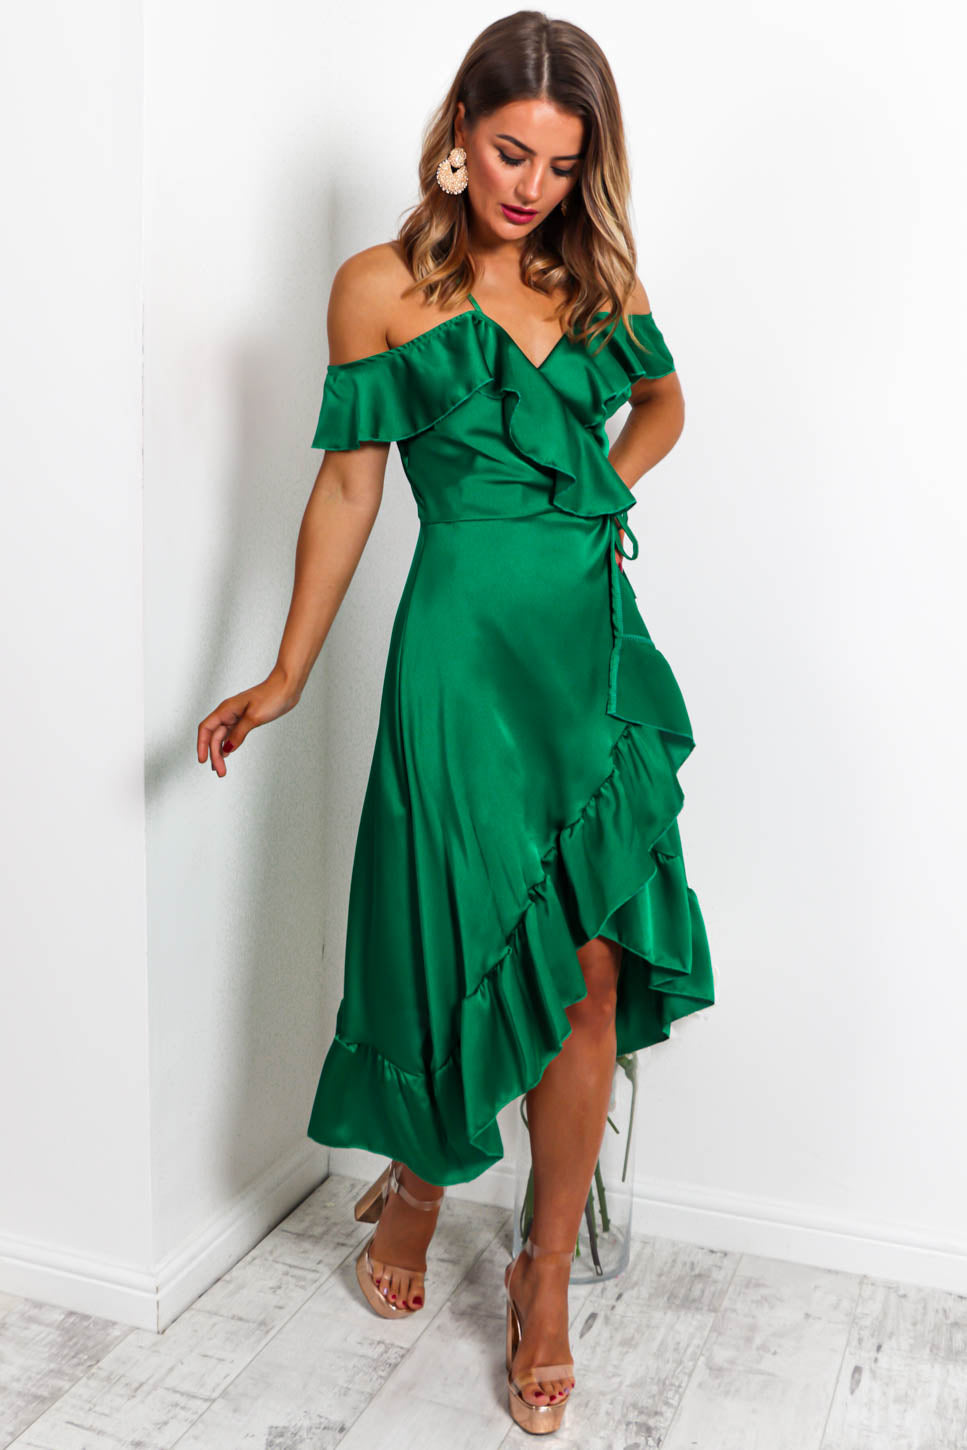 https://cdn.shopify.com/s/files/1/0062/6661/7925/files/product-video-the-hot-list-midi-dress-in-green-satin.mp4?4802